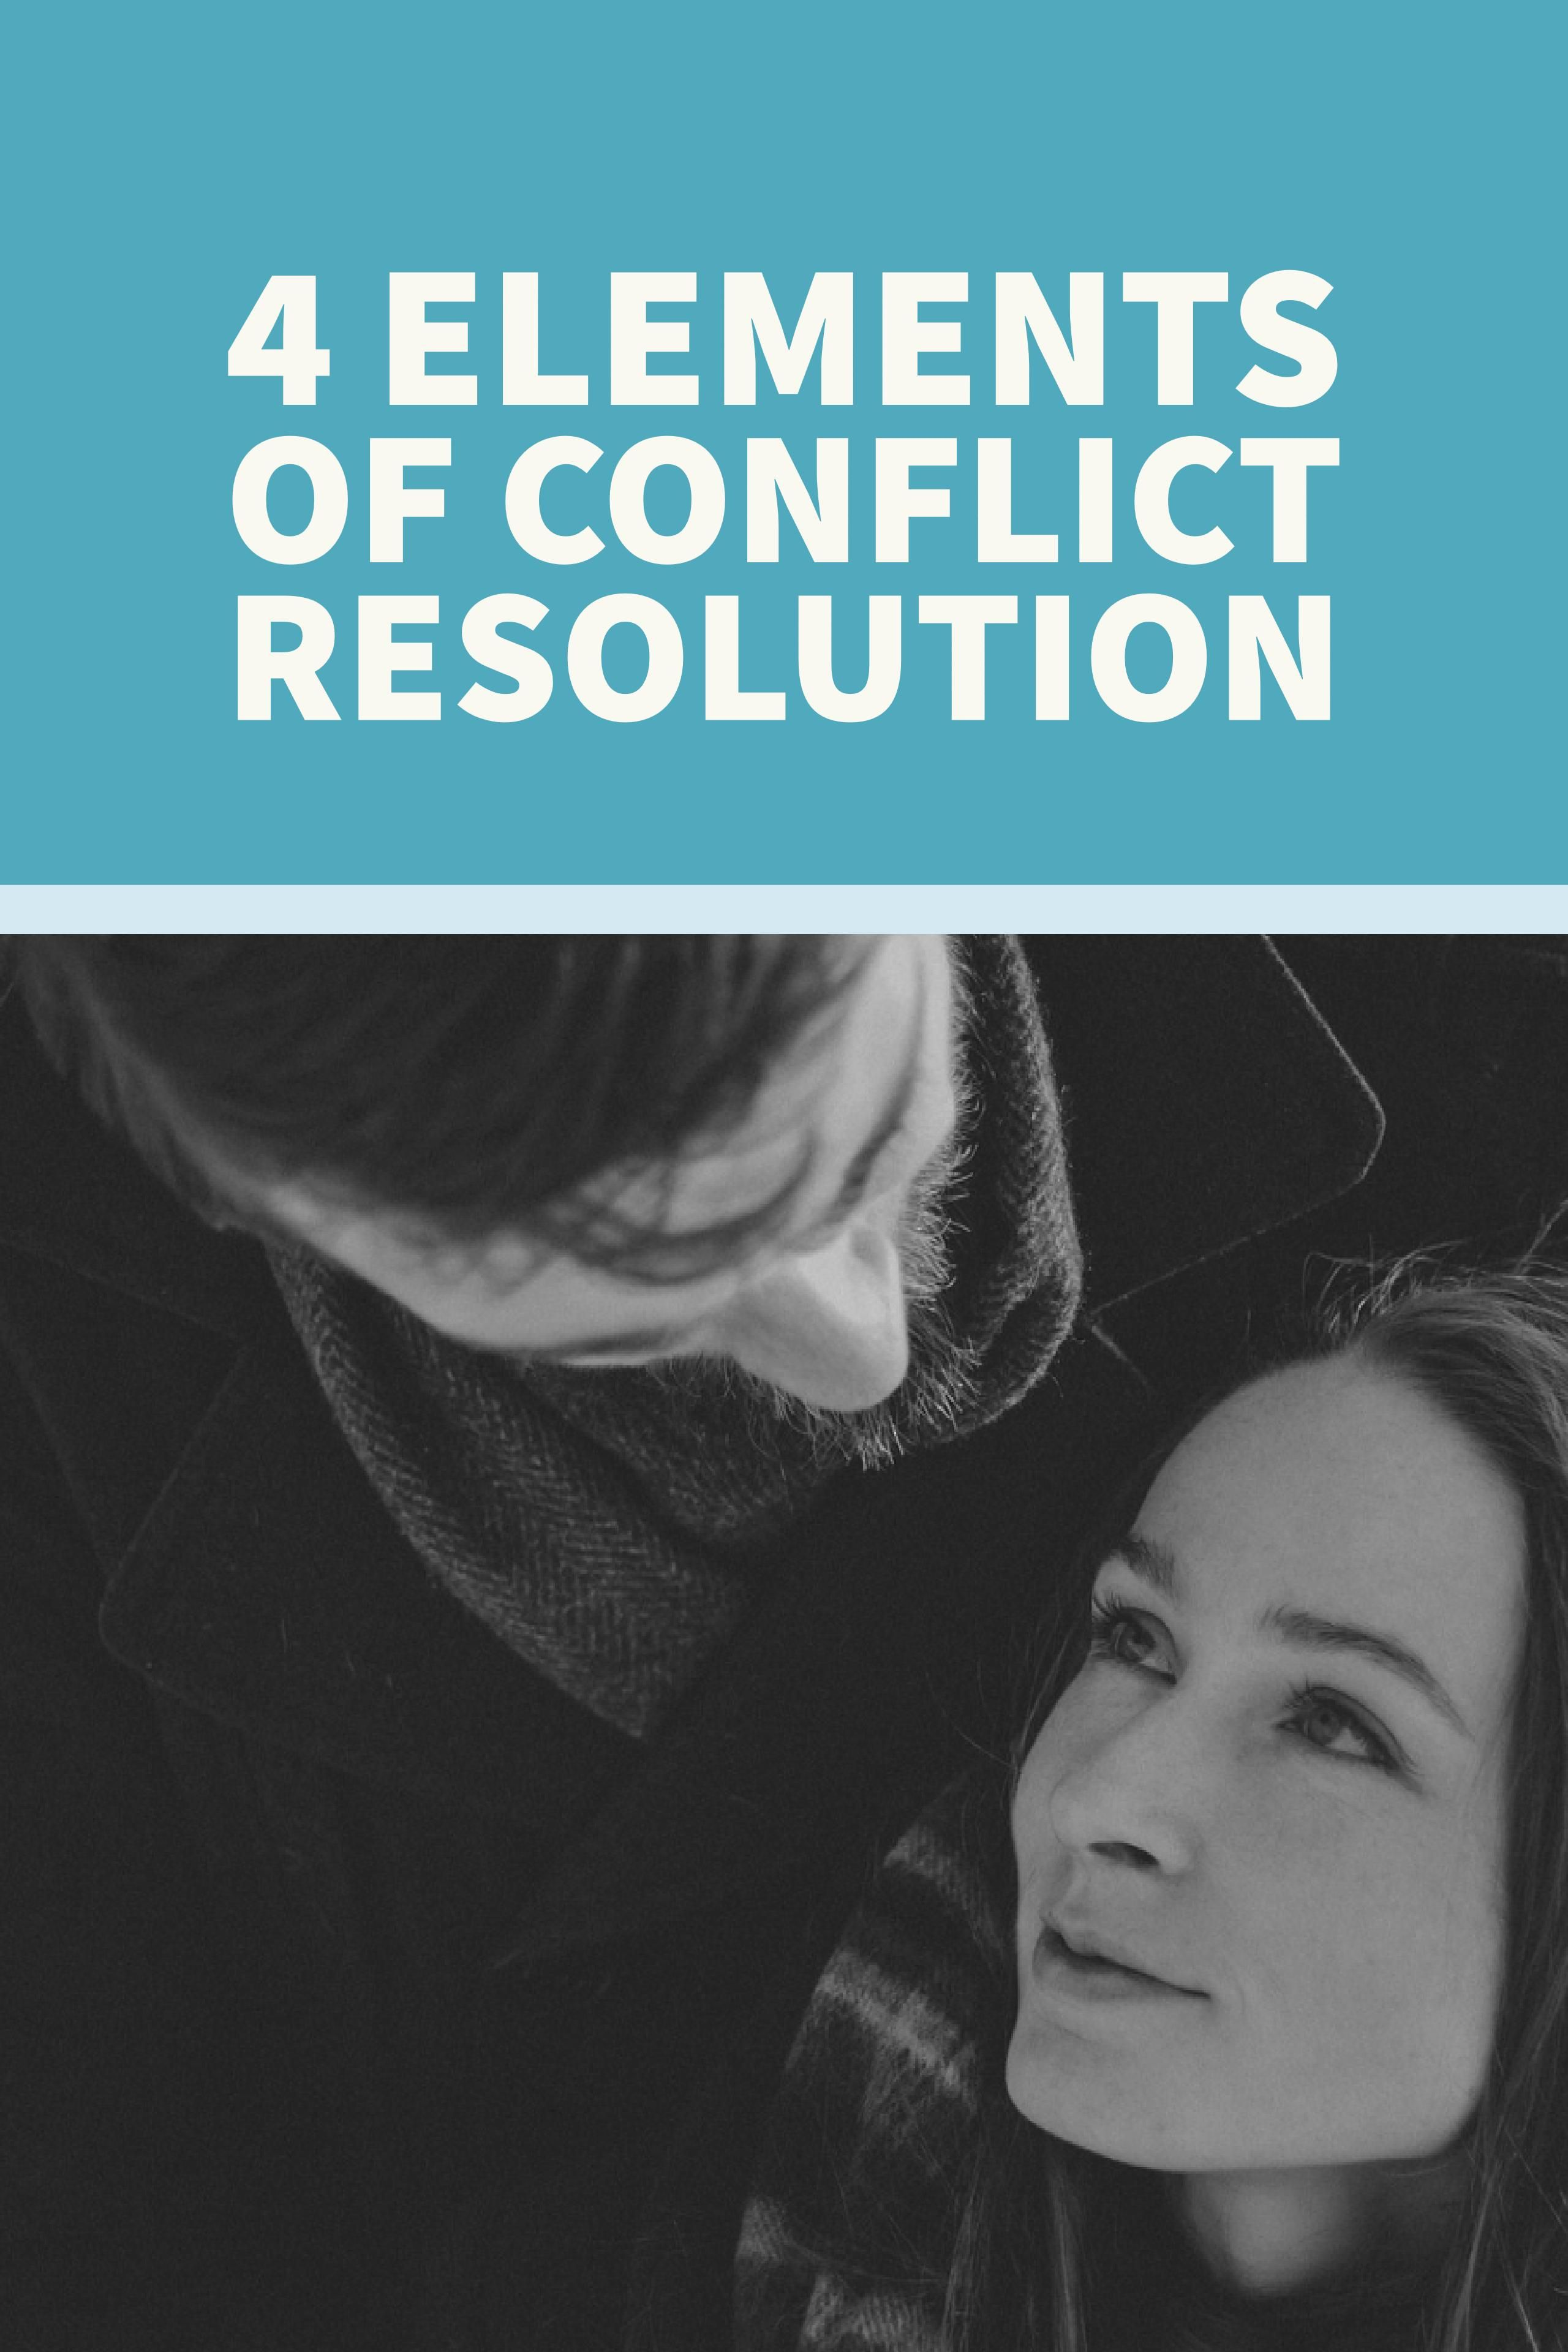 Four Elements Of Conflict Resolution For Your Marriage